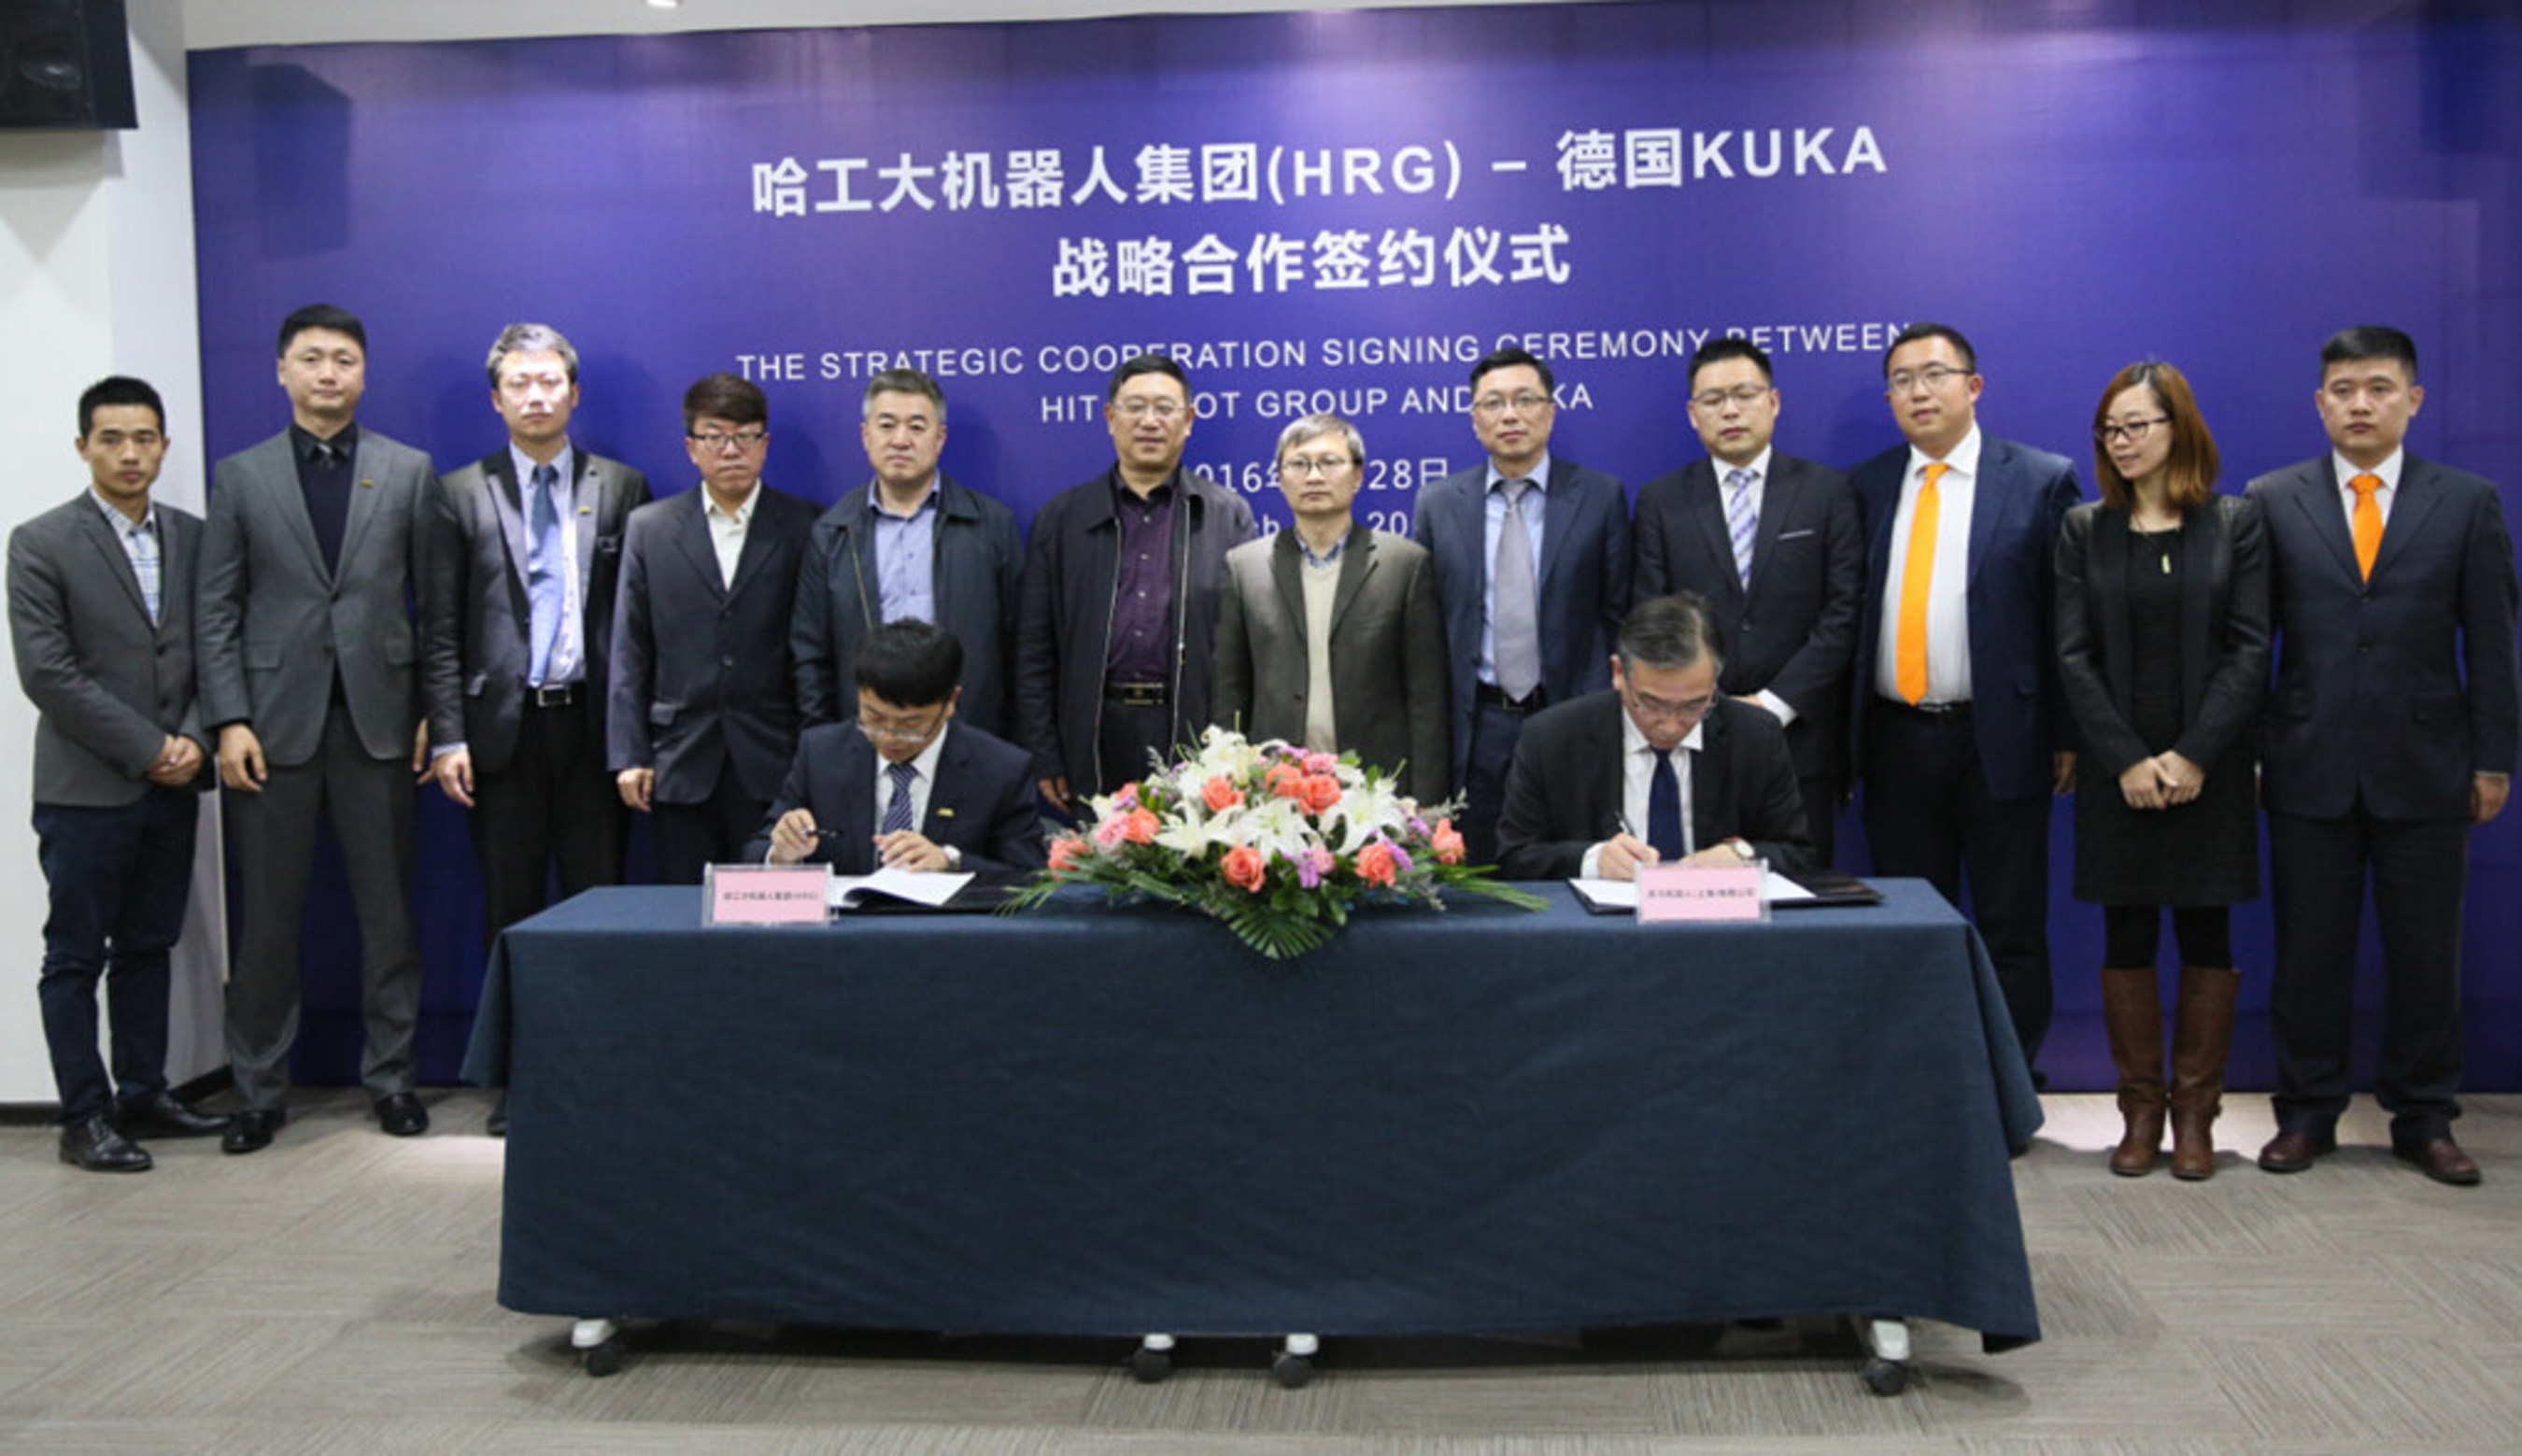 The Strategic Cooperation Signing Ceremony between HIT Robot Group (HRG) and KUKA